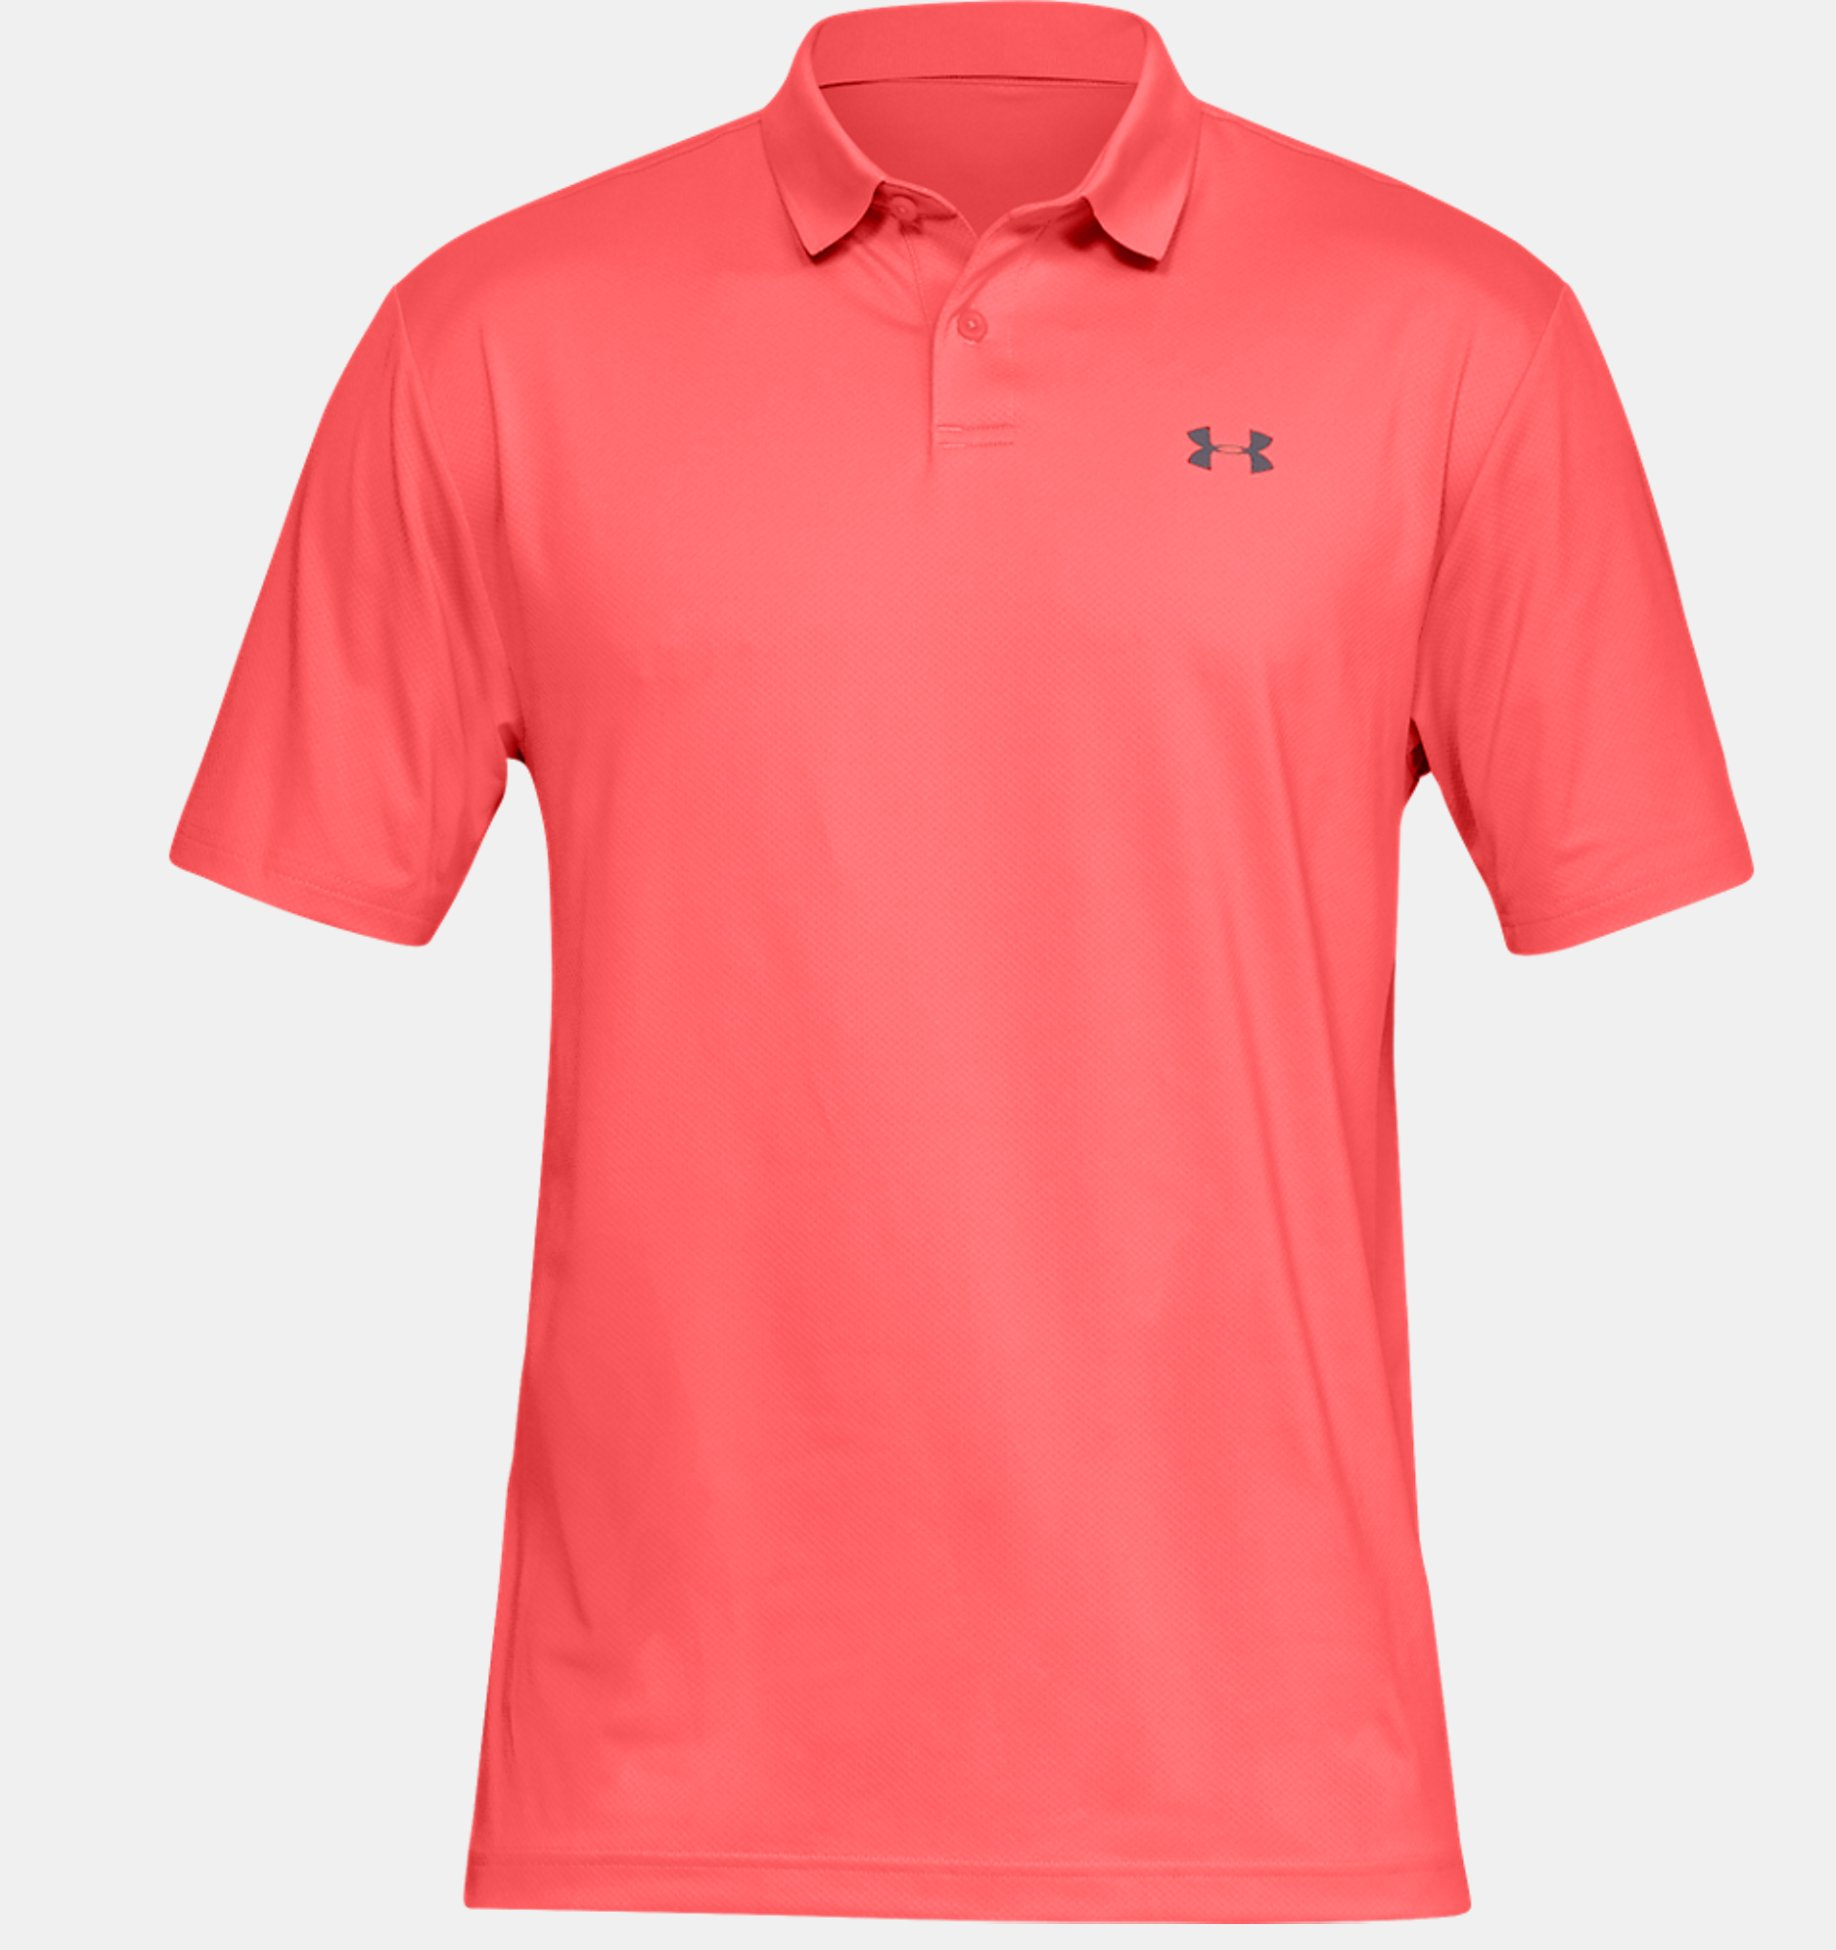 ... Playera Polo UA Performance para Hombre ... 52399027375f3